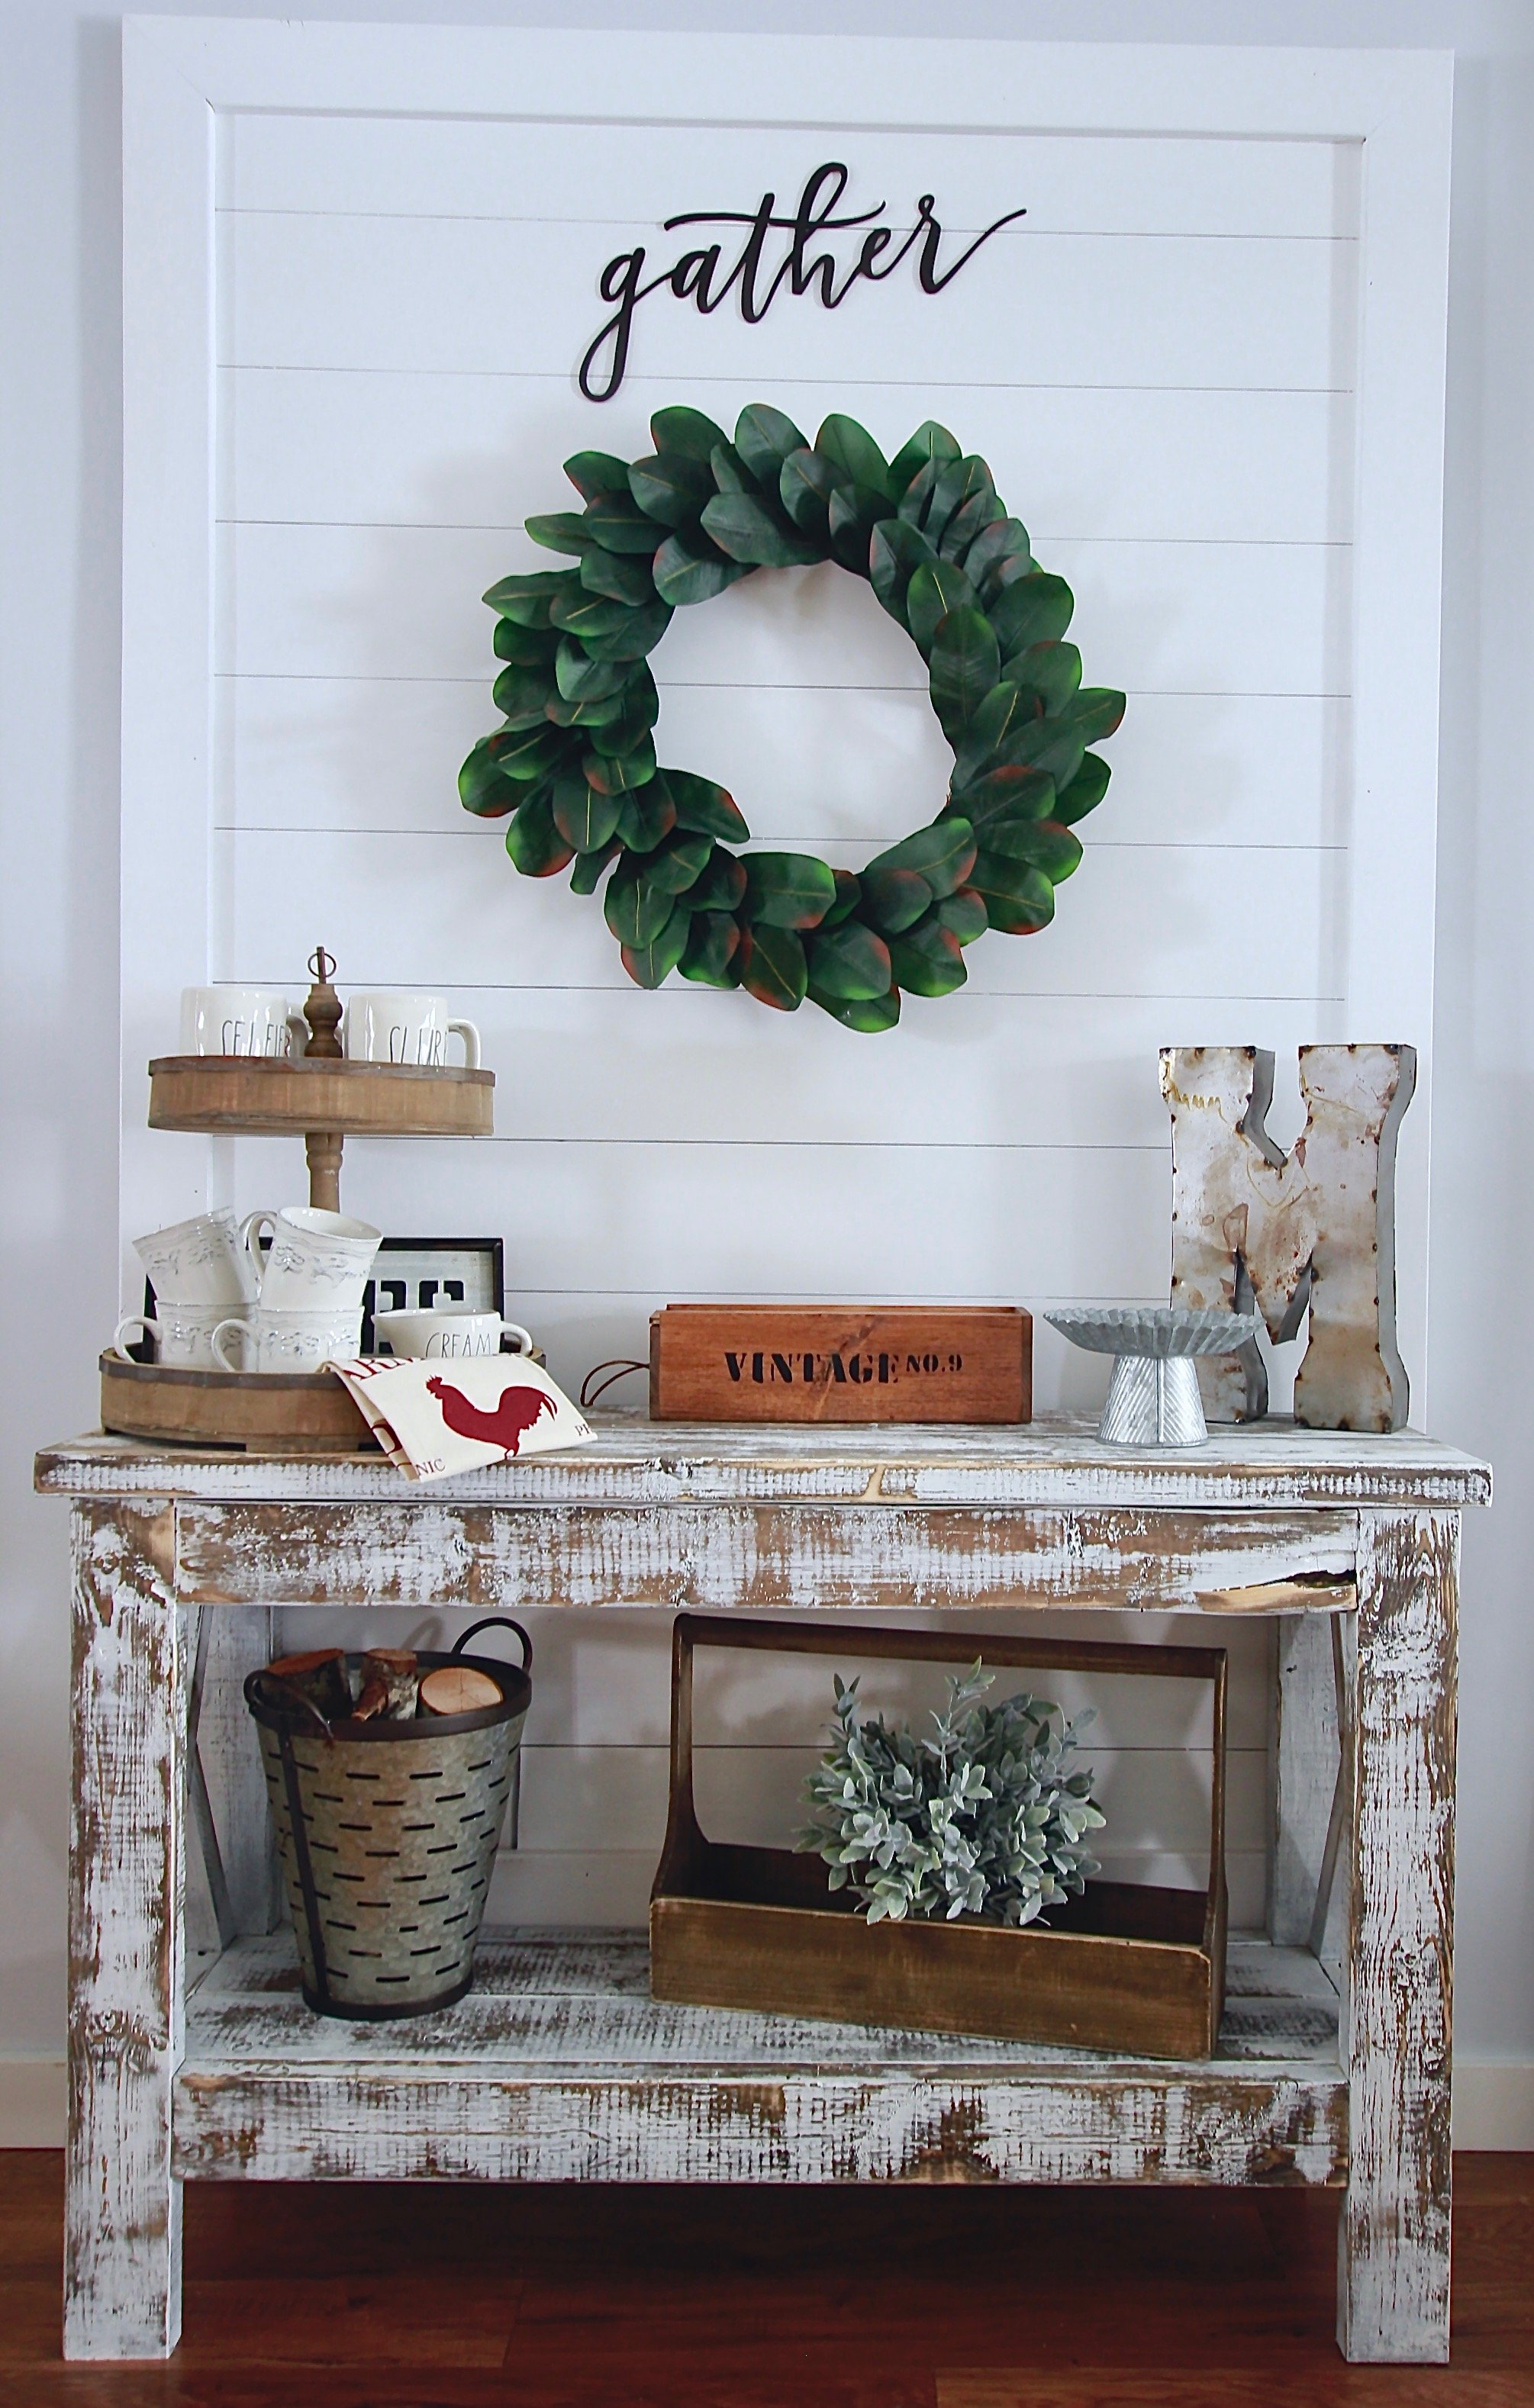 Our DIY Shiplap Wall Hanging Sign Decor www.whitepicketfarmhouse.com